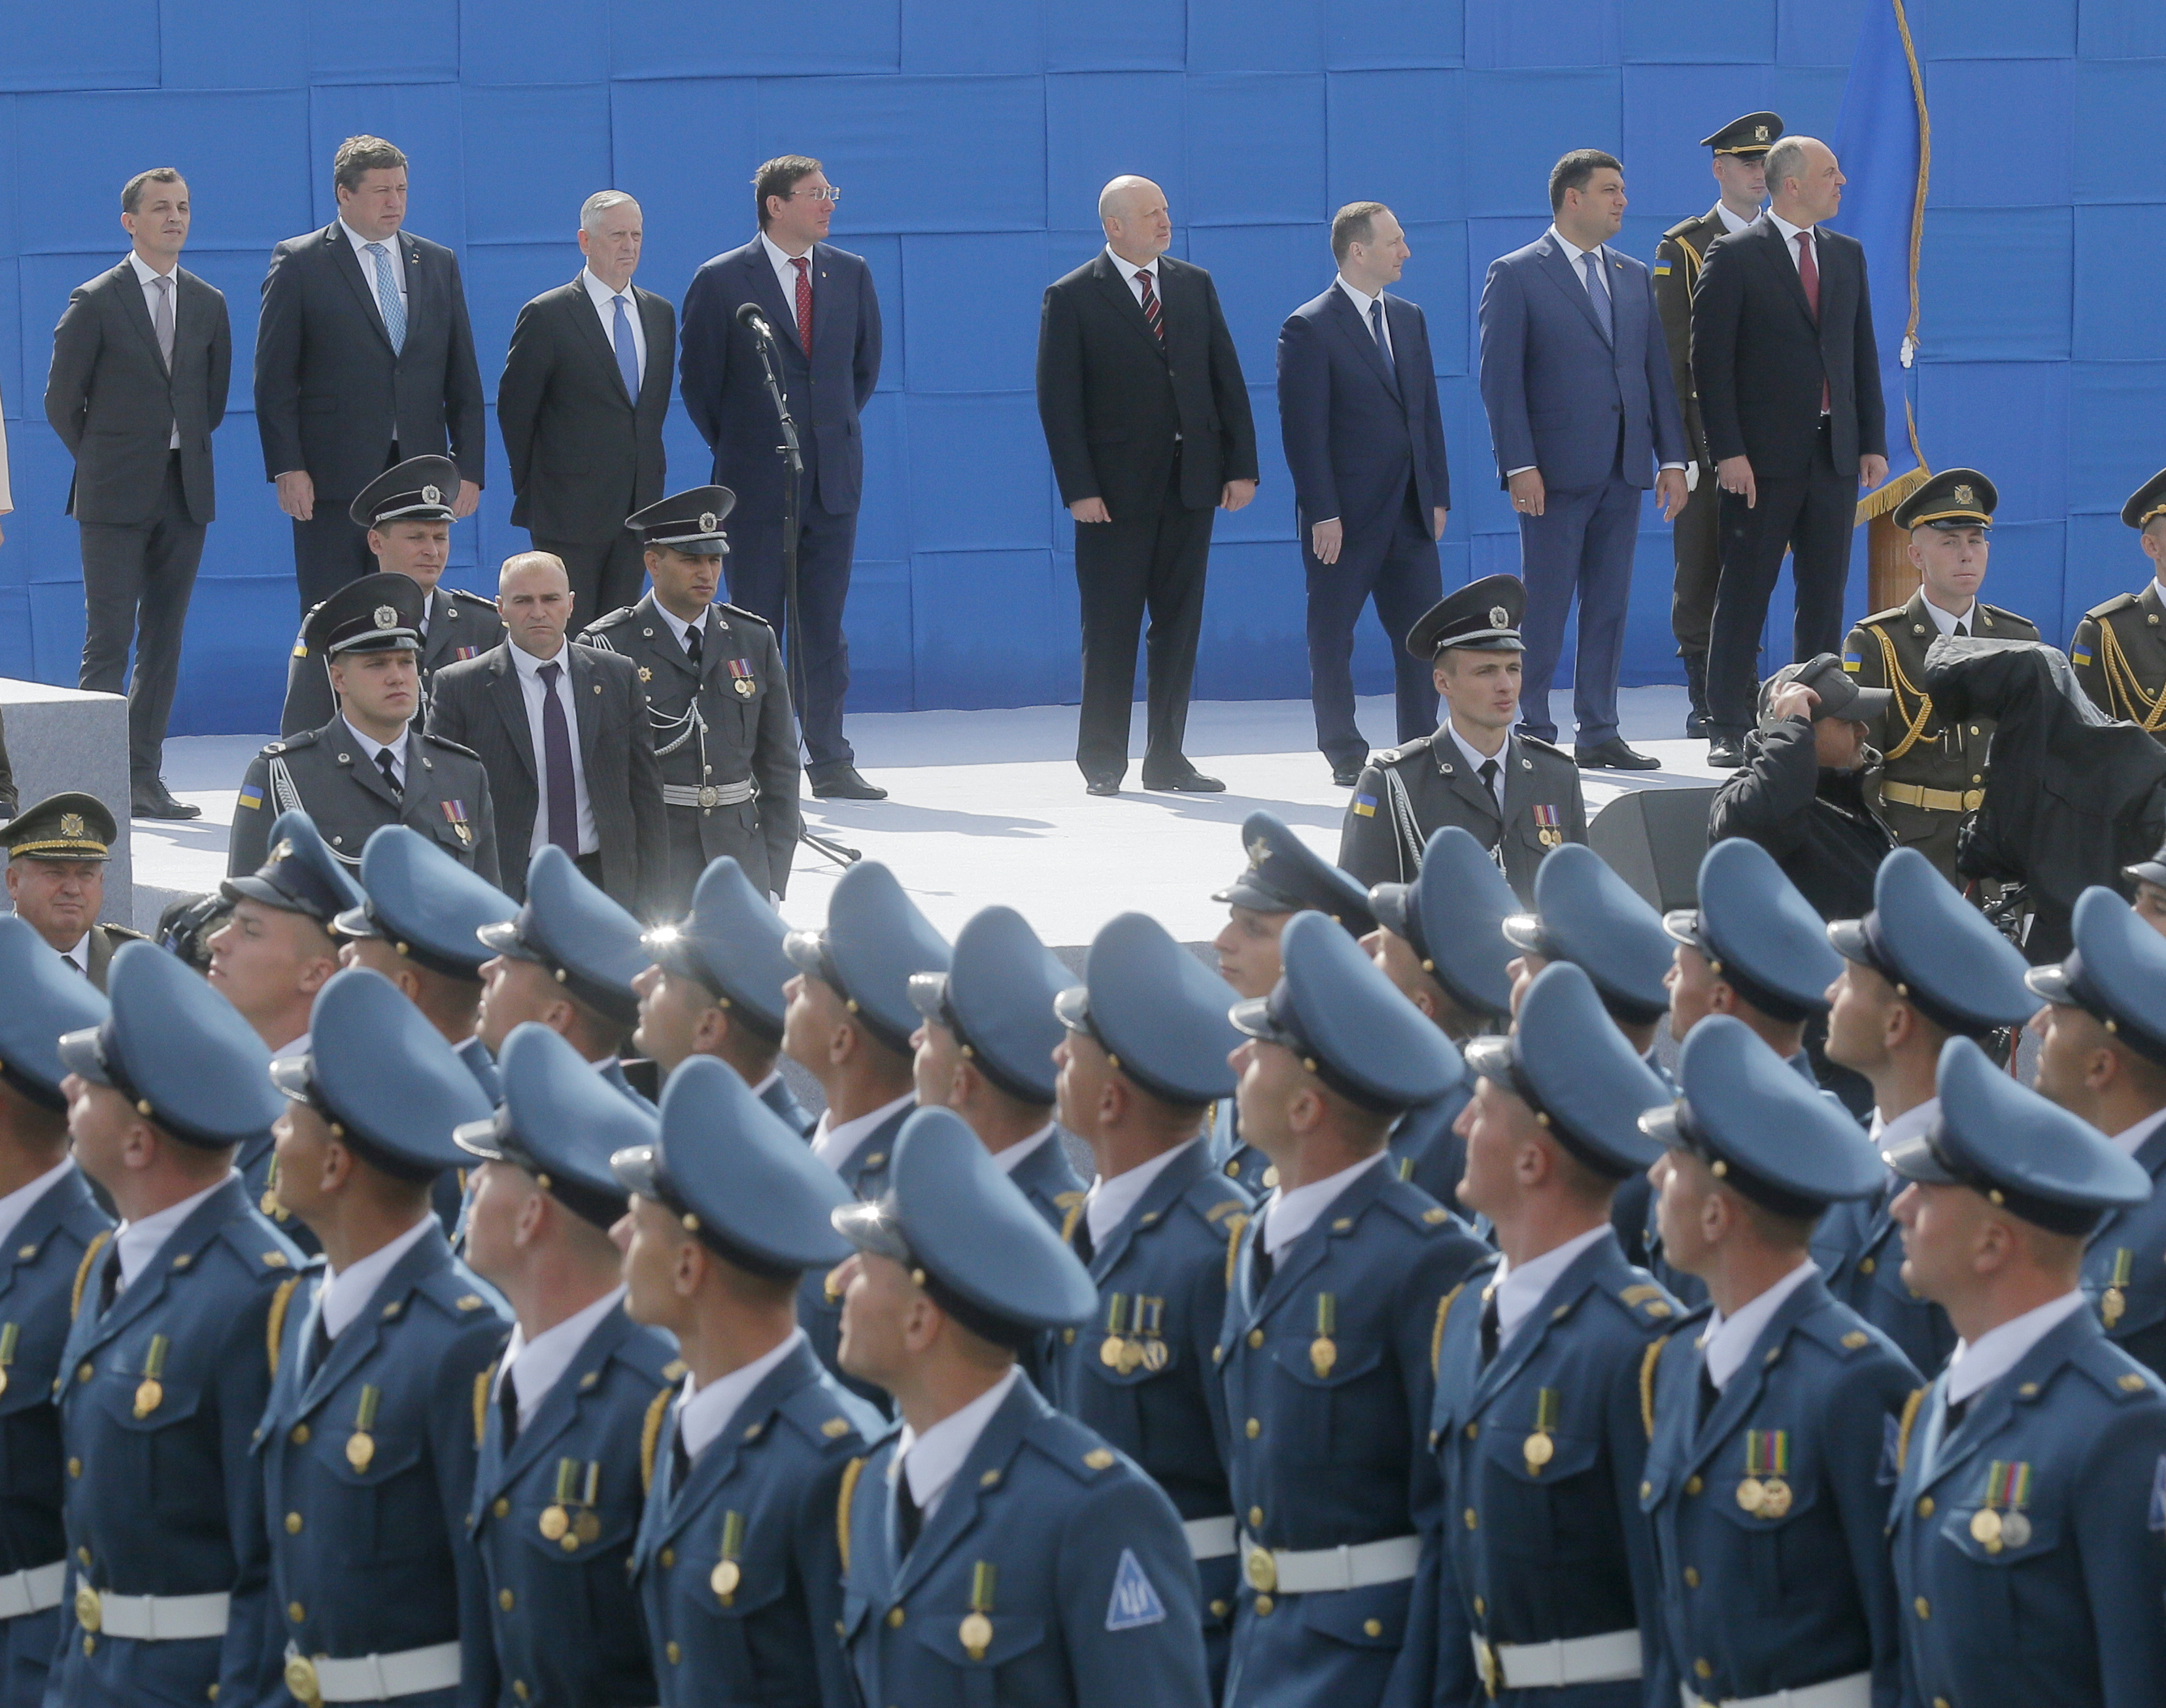 U.S. Defense Secretary James Mattis, third left, and Ukrainian officials watch a military parade to celebrate Independence Day in Kyiv, Ukraine, Aug. 24, 2017.